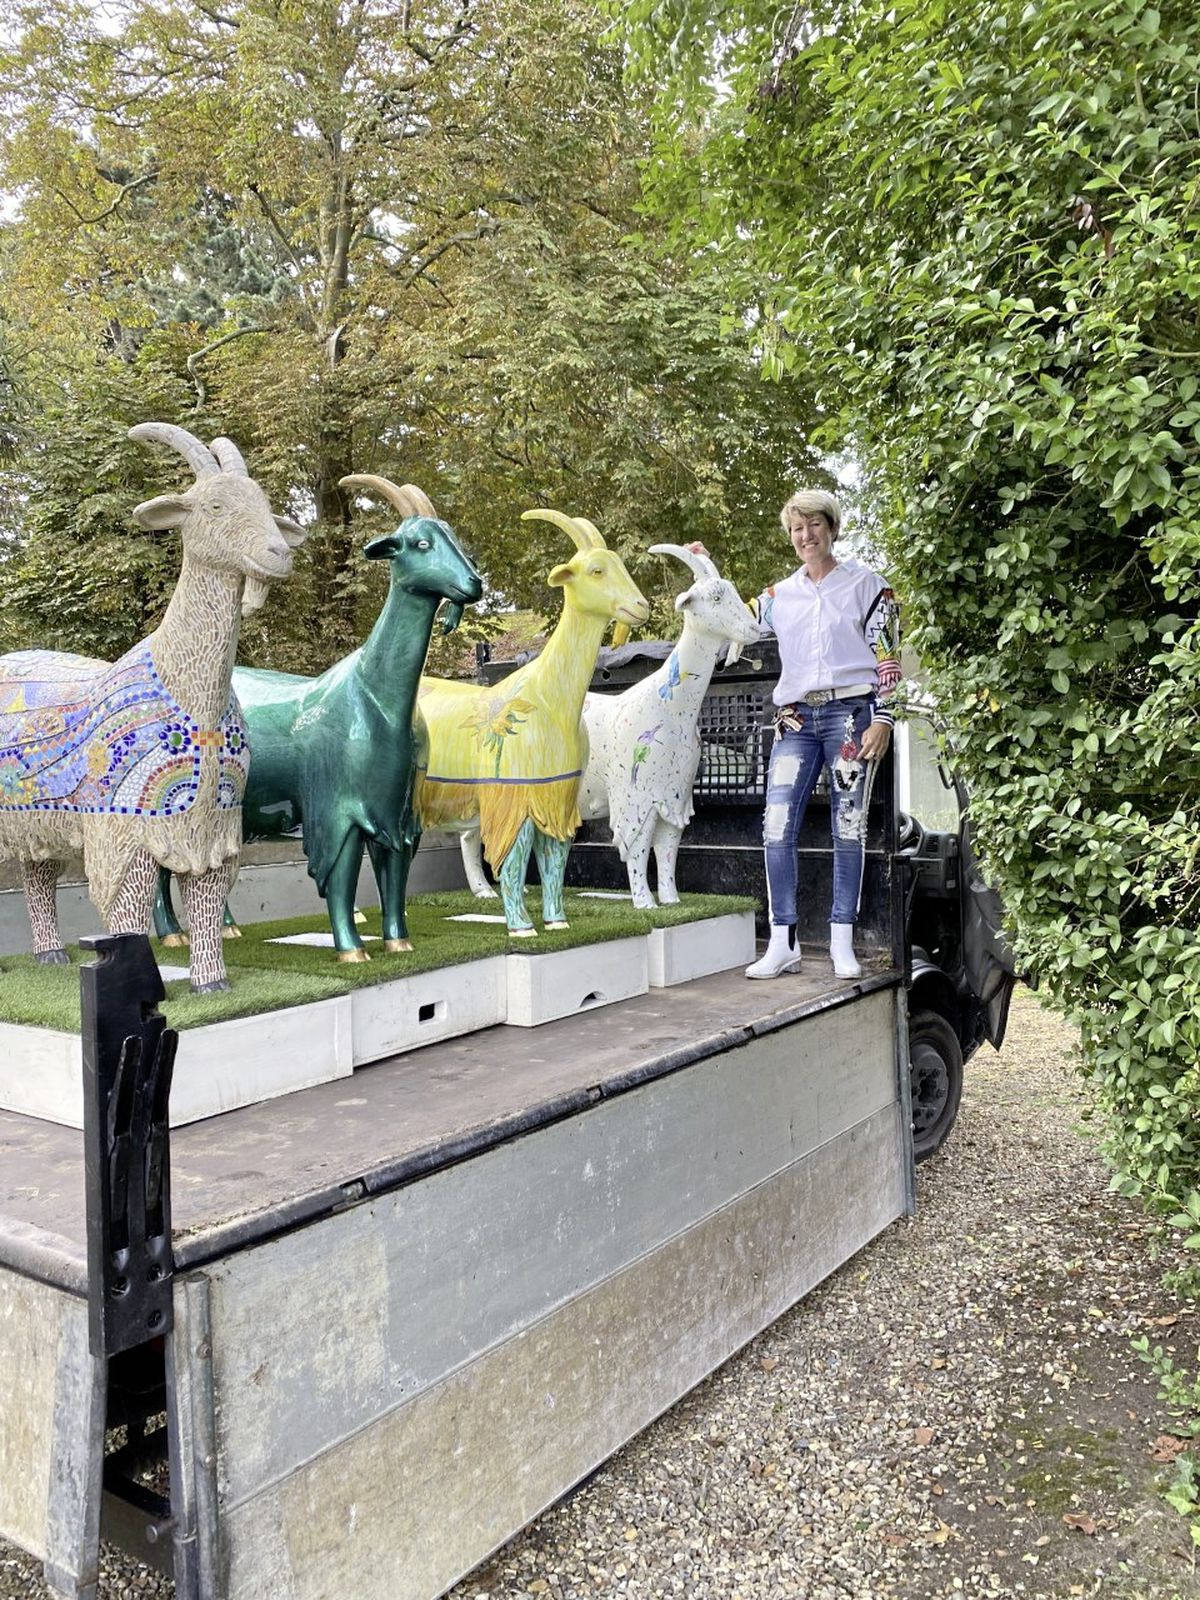 Catherine Best with Amazing Technicolour Dream Goat, Derpy Goat, Vincent Van Goat and Hamilton, who she has now renamed Doc. (29998120)